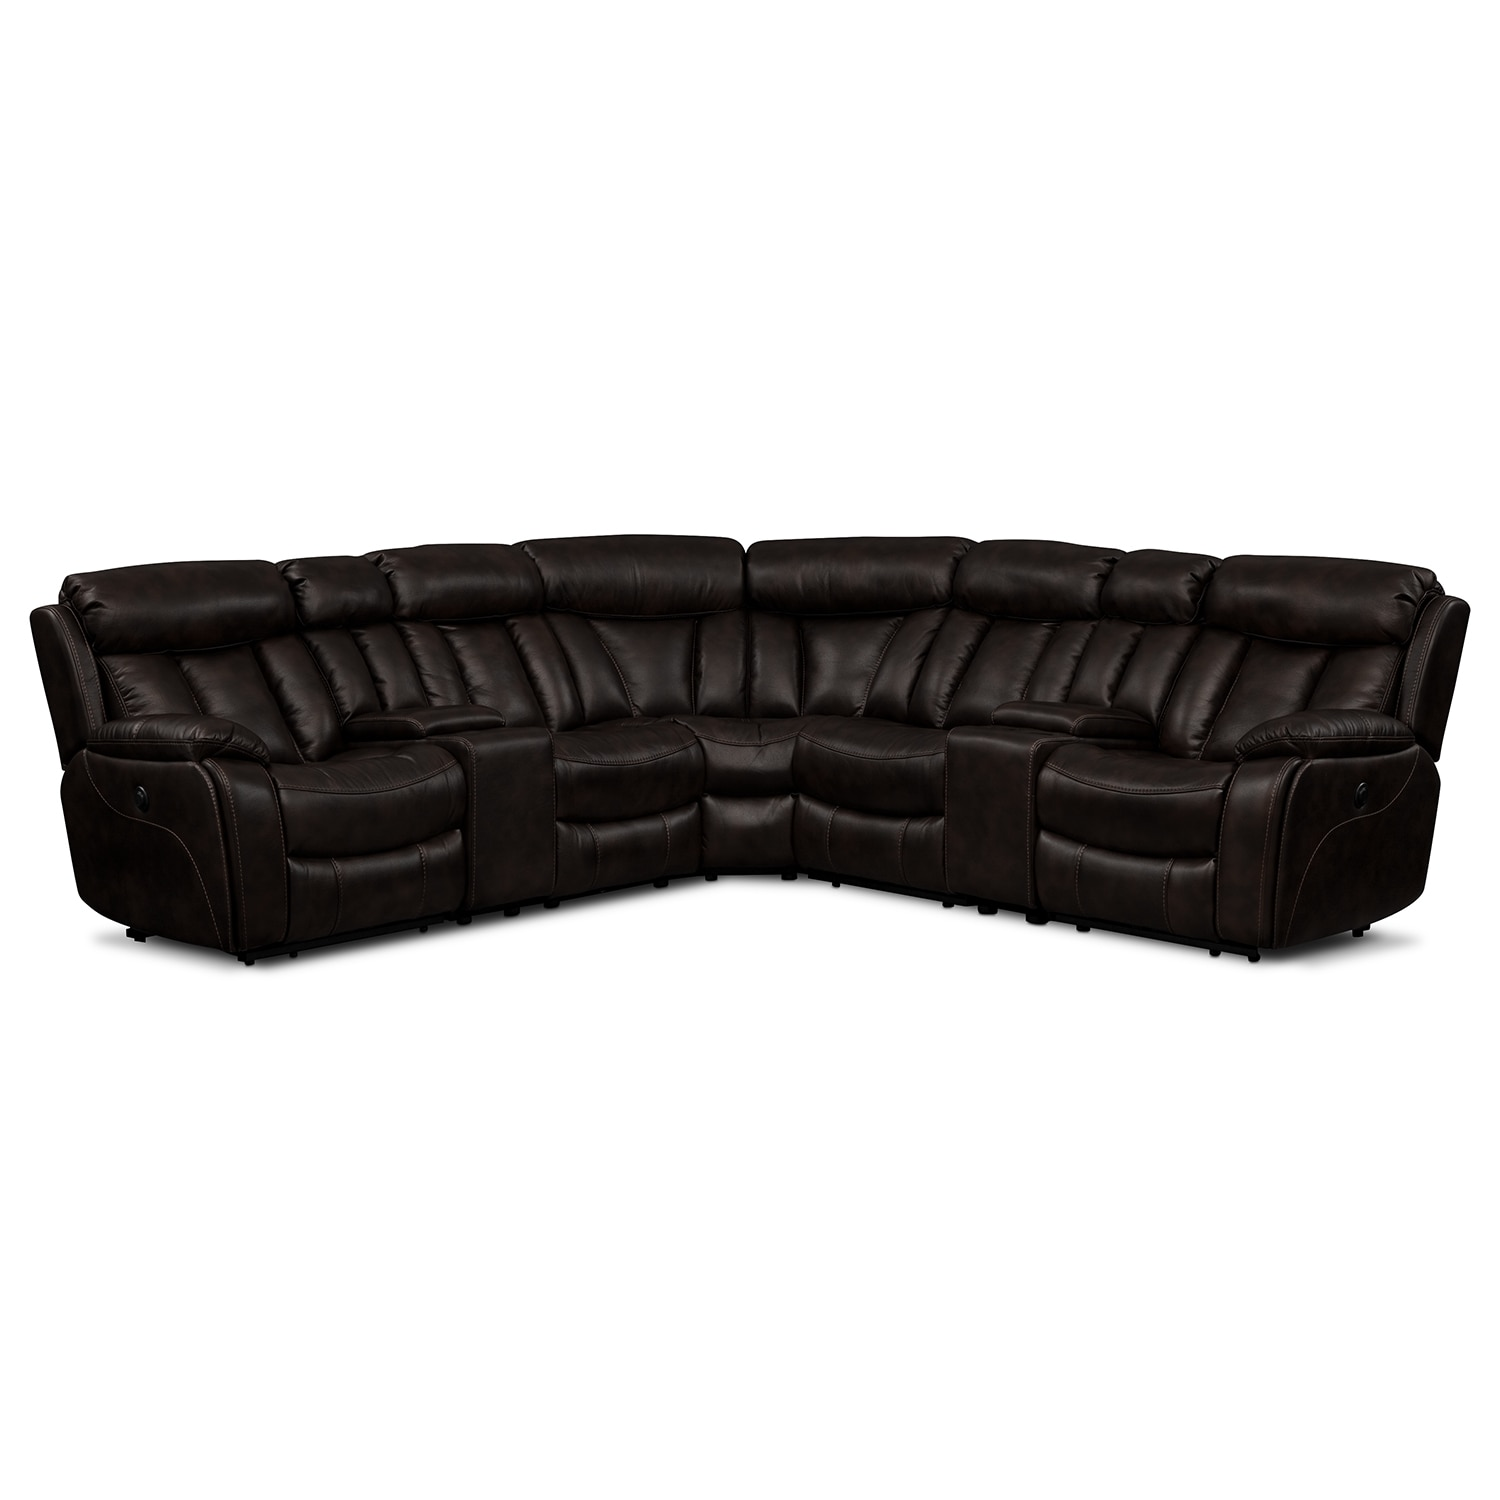 Living Room Furniture   Diablo 7 Piece Power Reclining Sectional With  Armless Power Chair